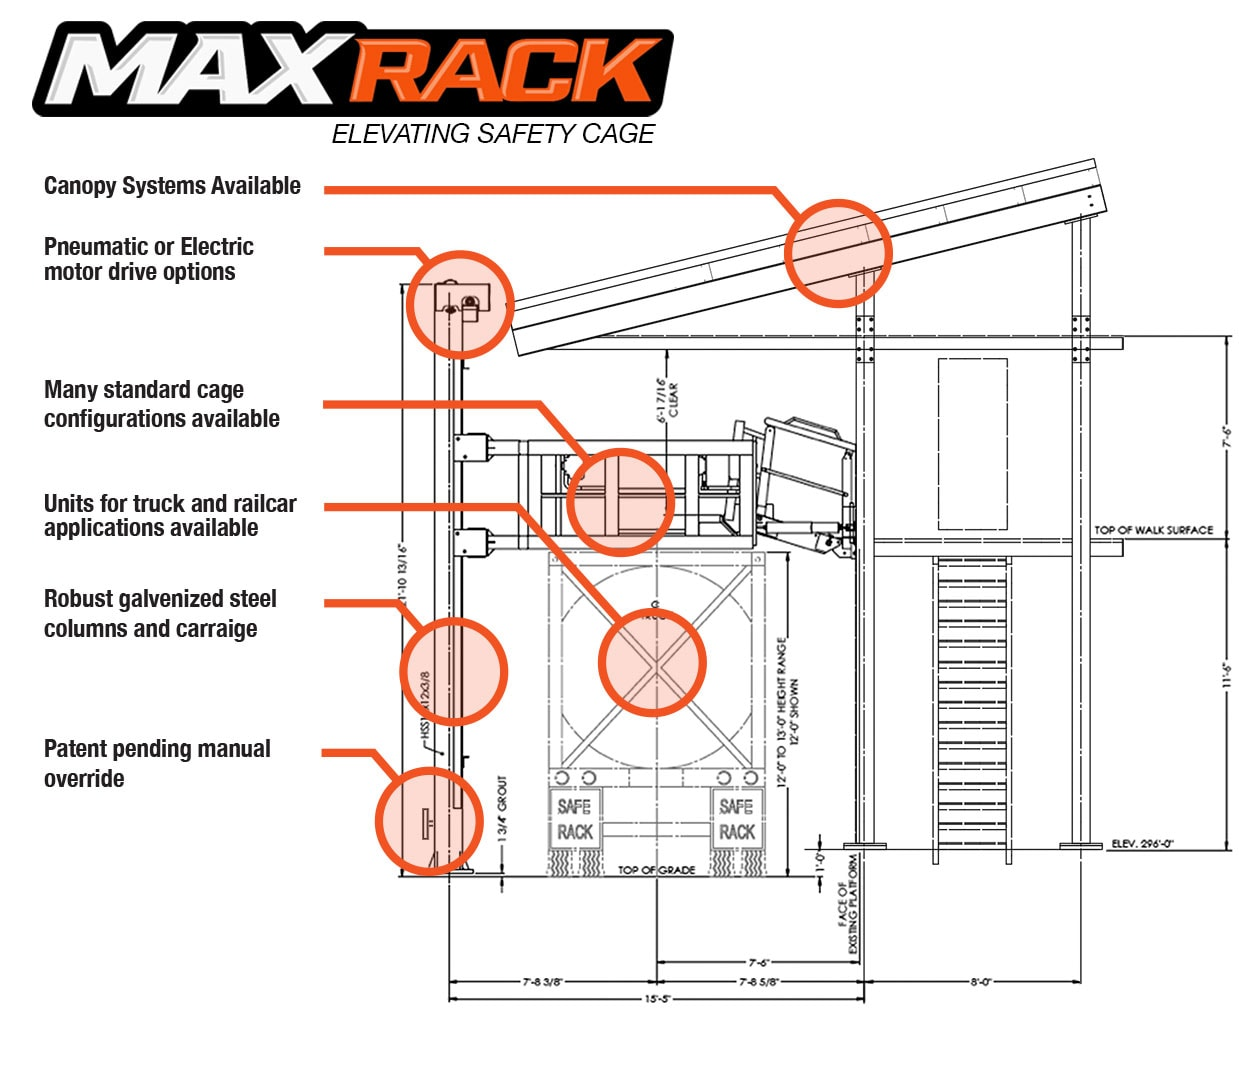 MaxRack-Elevating-Safety-Cage-features